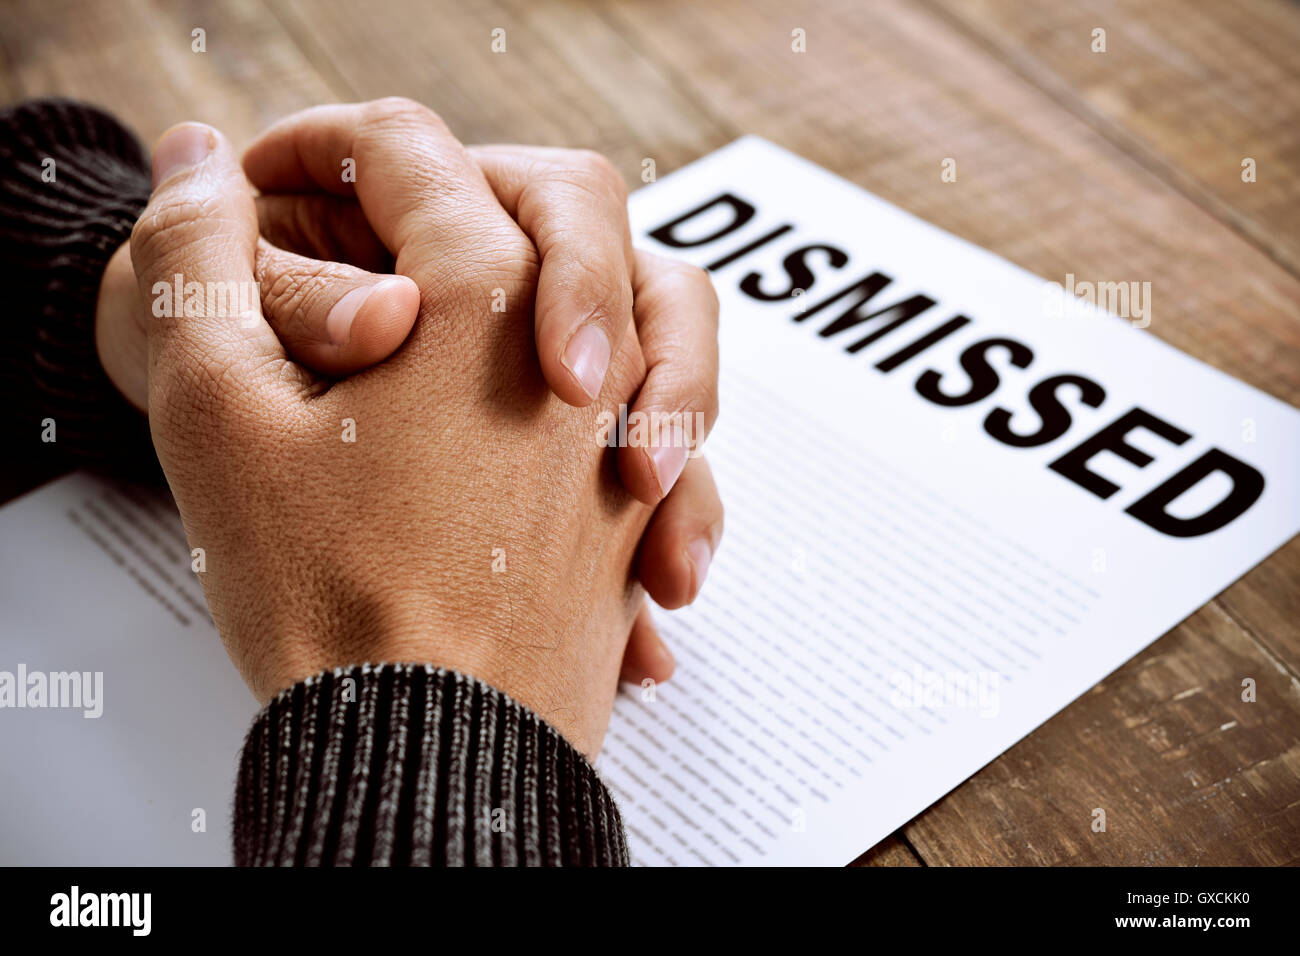 closeup of the clasped hands of a young caucasian man on a document with the text dismissed, placed on a rustic - Stock Image